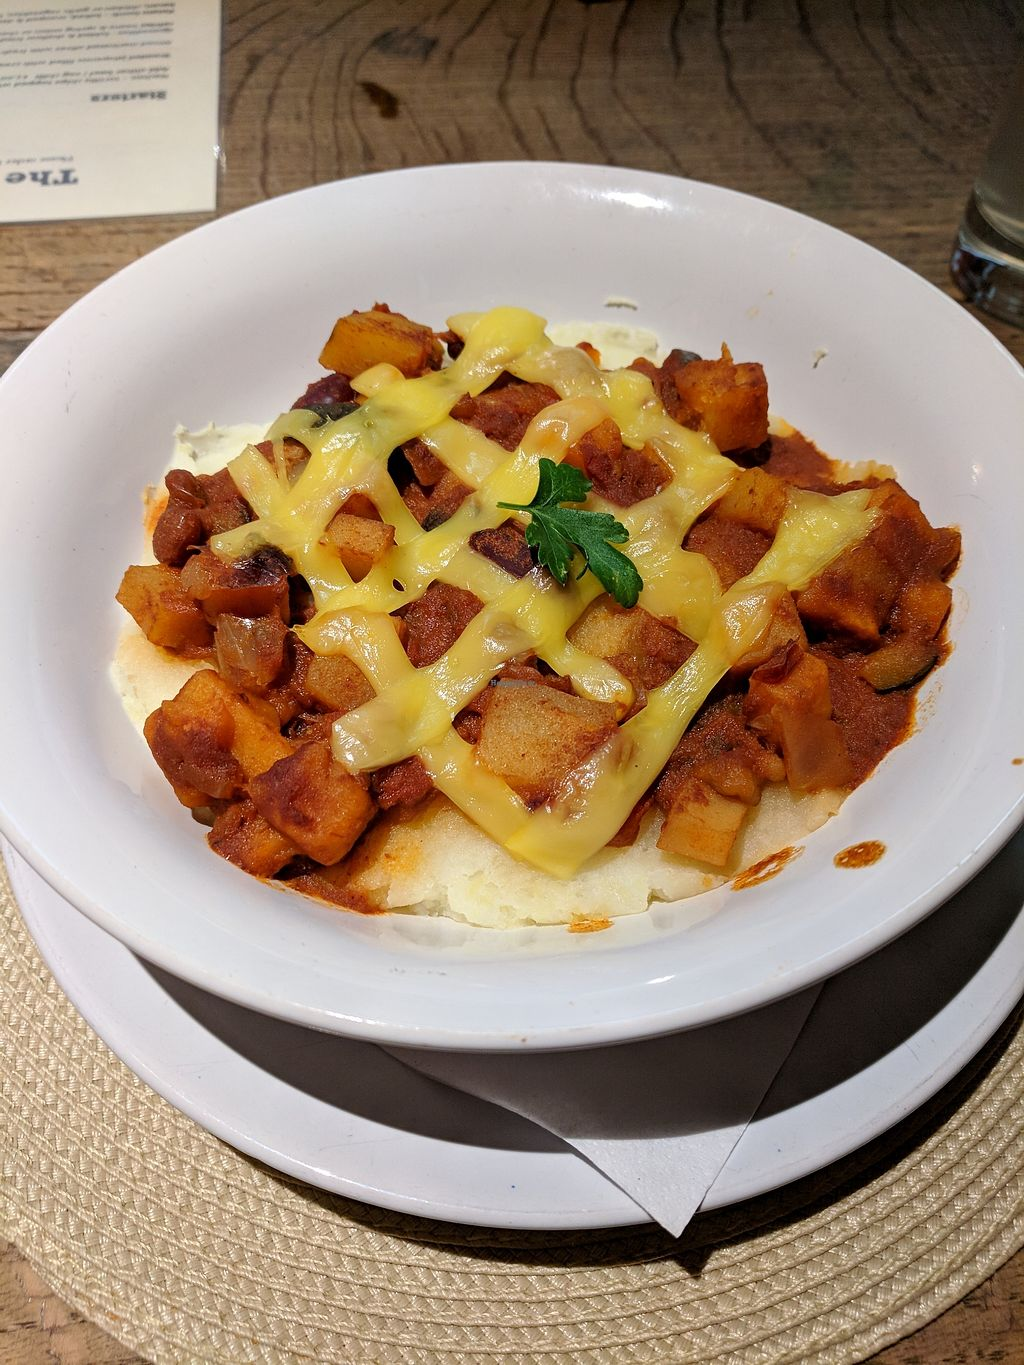 """Photo of The Chambers  by <a href=""""/members/profile/Pupnik"""">Pupnik</a> <br/>Vegan chilli mash bowl <br/> January 29, 2018  - <a href='/contact/abuse/image/110553/352444'>Report</a>"""